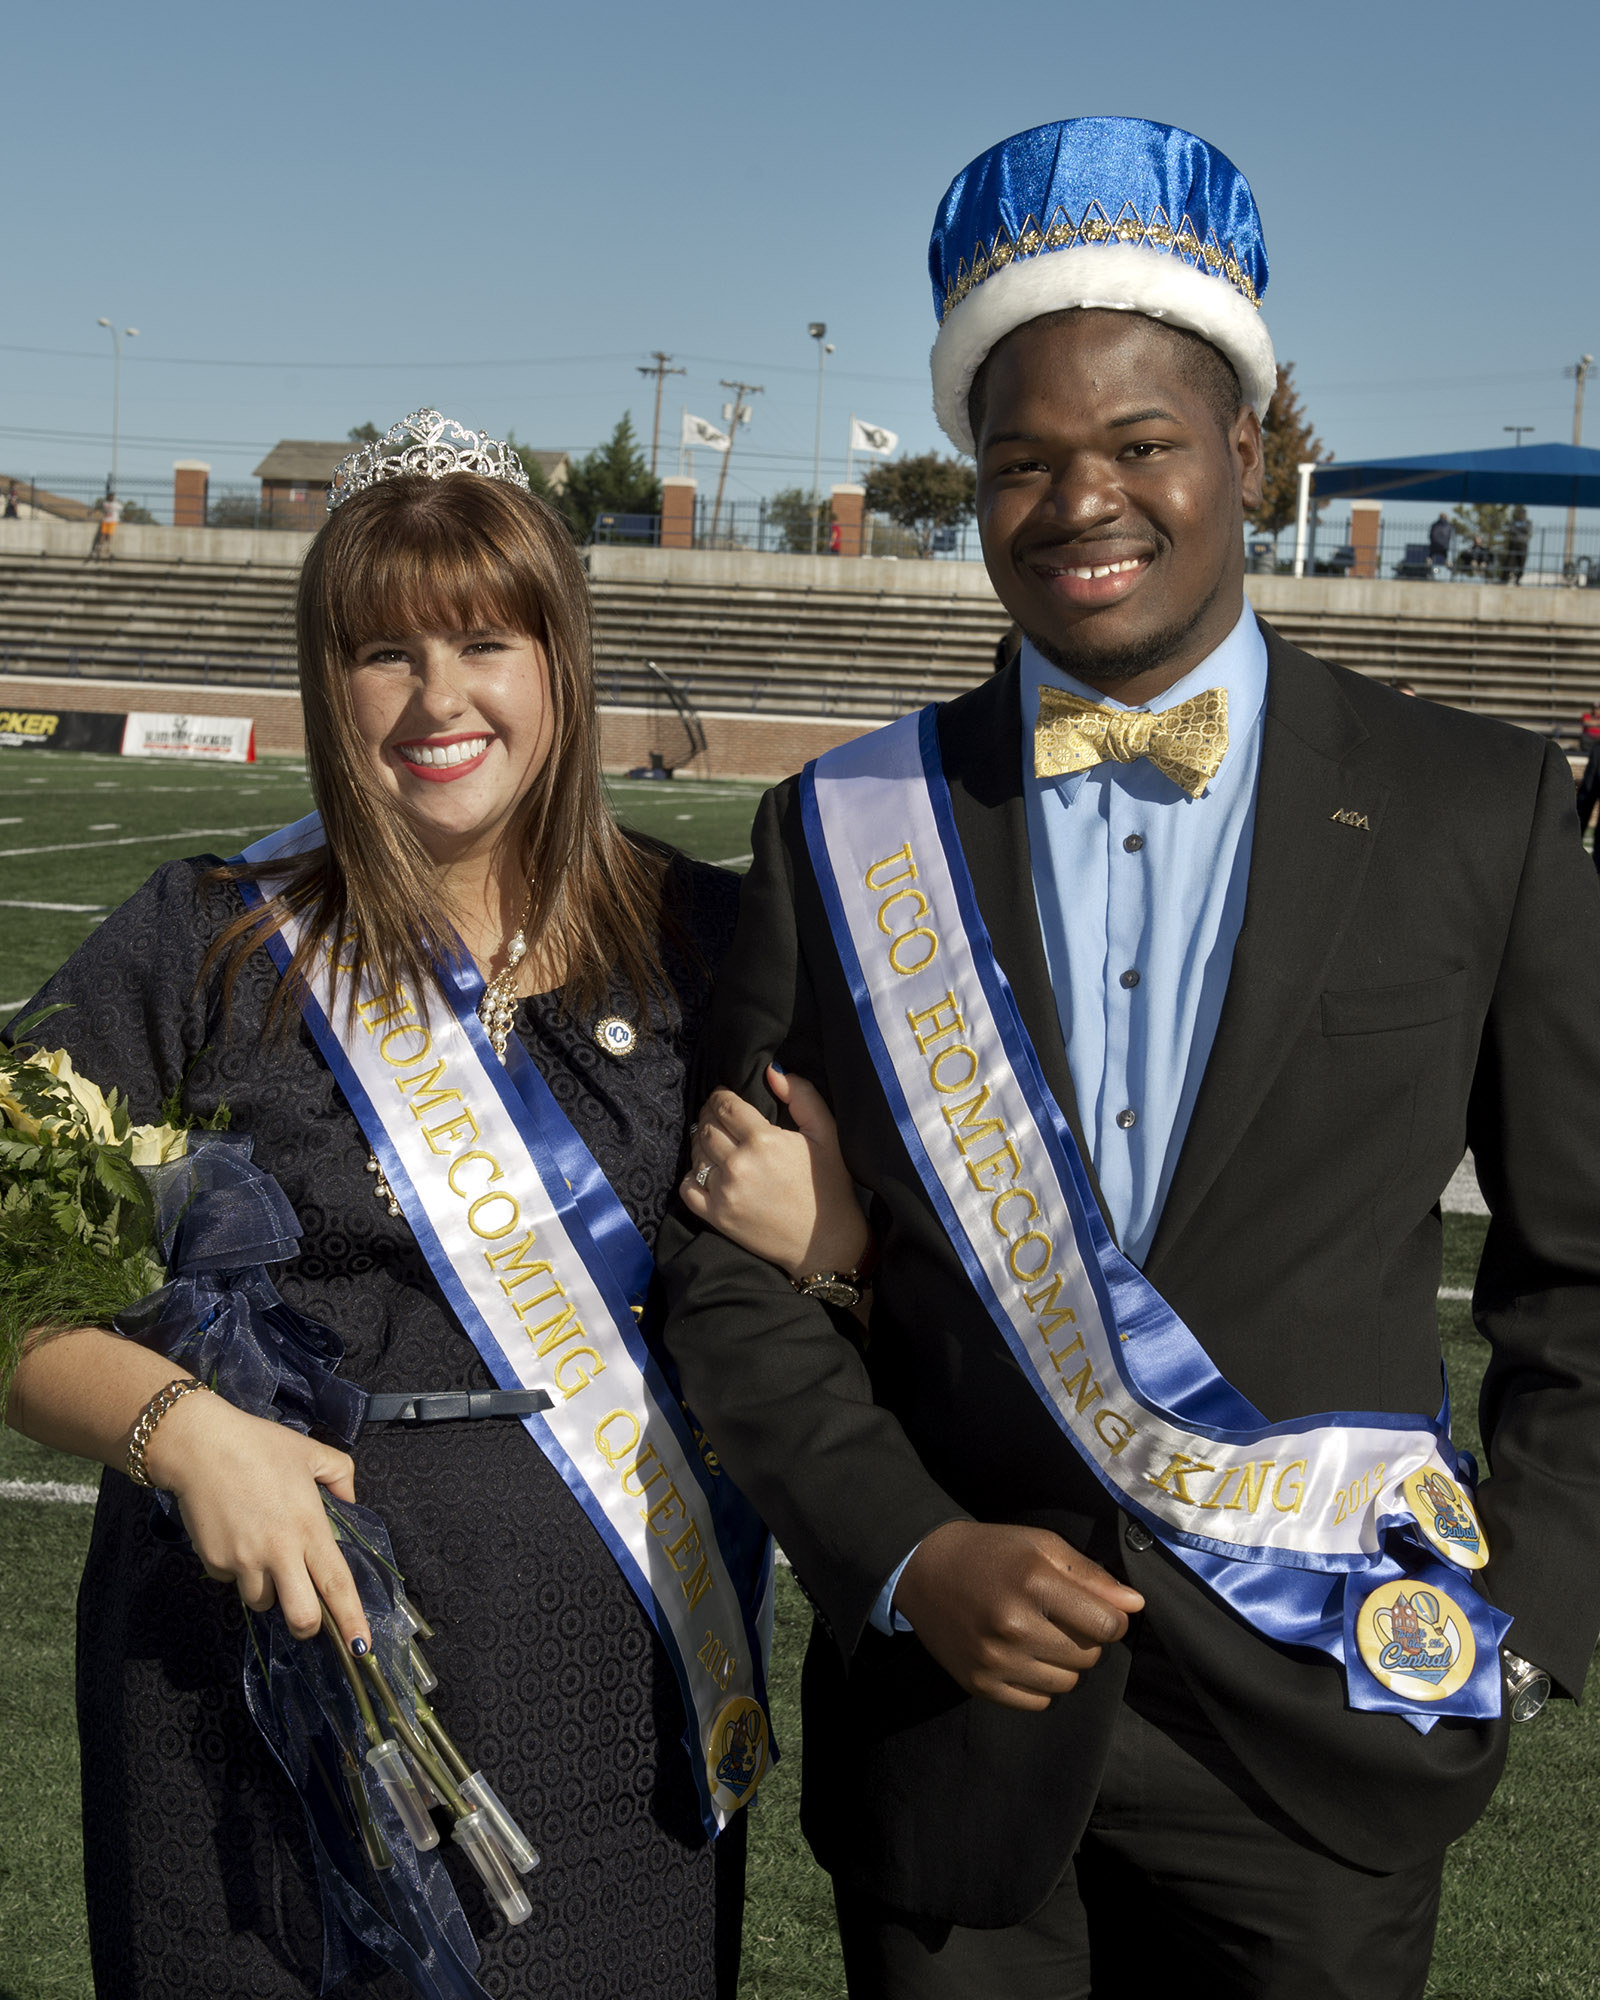 University of Central Oklahoma seniors Vincent Burr and Jillian Goodman were named the 2013 Homecoming King and Queen during Central's Homecoming football game on Nov. 2, 2013.